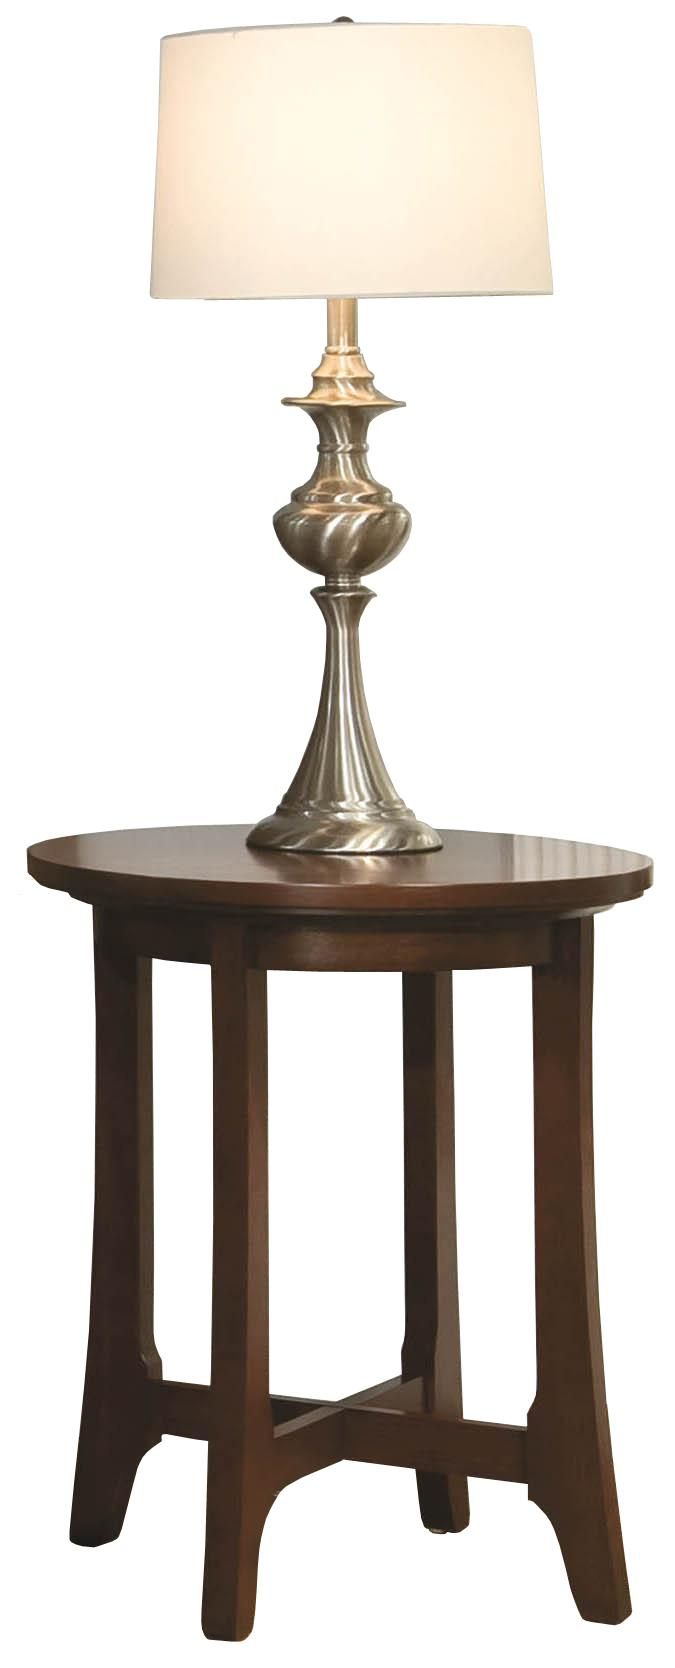 Occasional Tables Durham Westwood Round Lamp Table by Durham at Stoney Creek Furniture